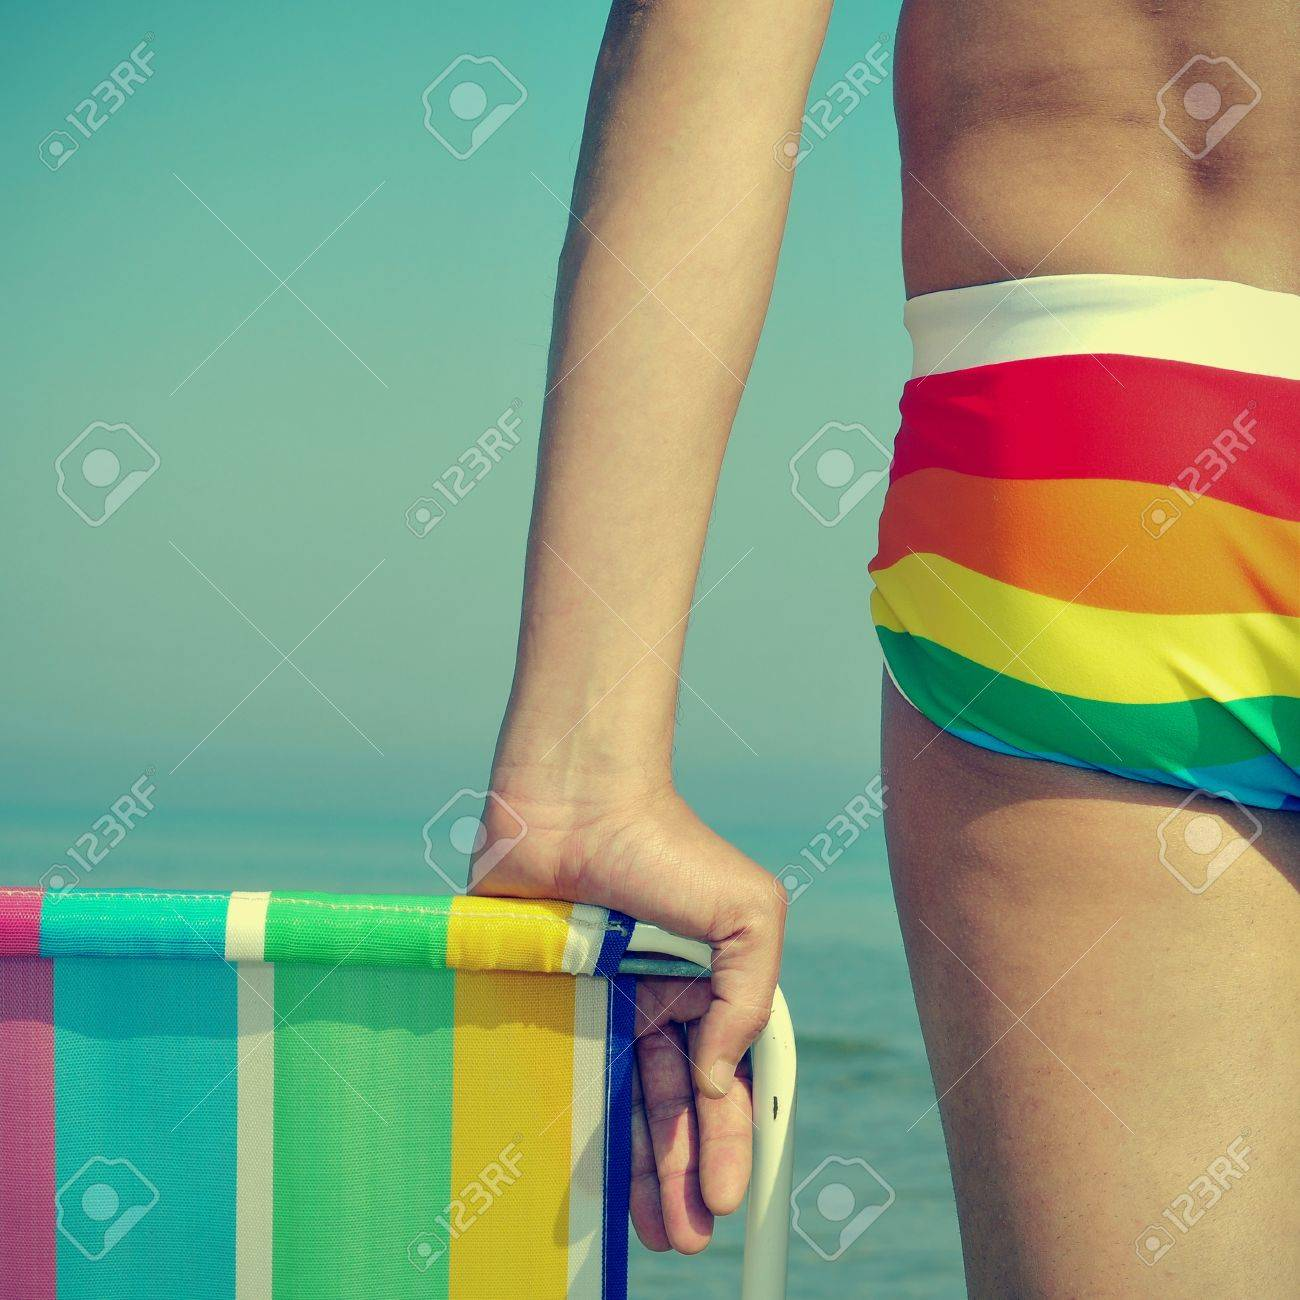 someone wearing a rainbow swimsuit and a colorful deck chair on the beach Stock Photo - 17794251